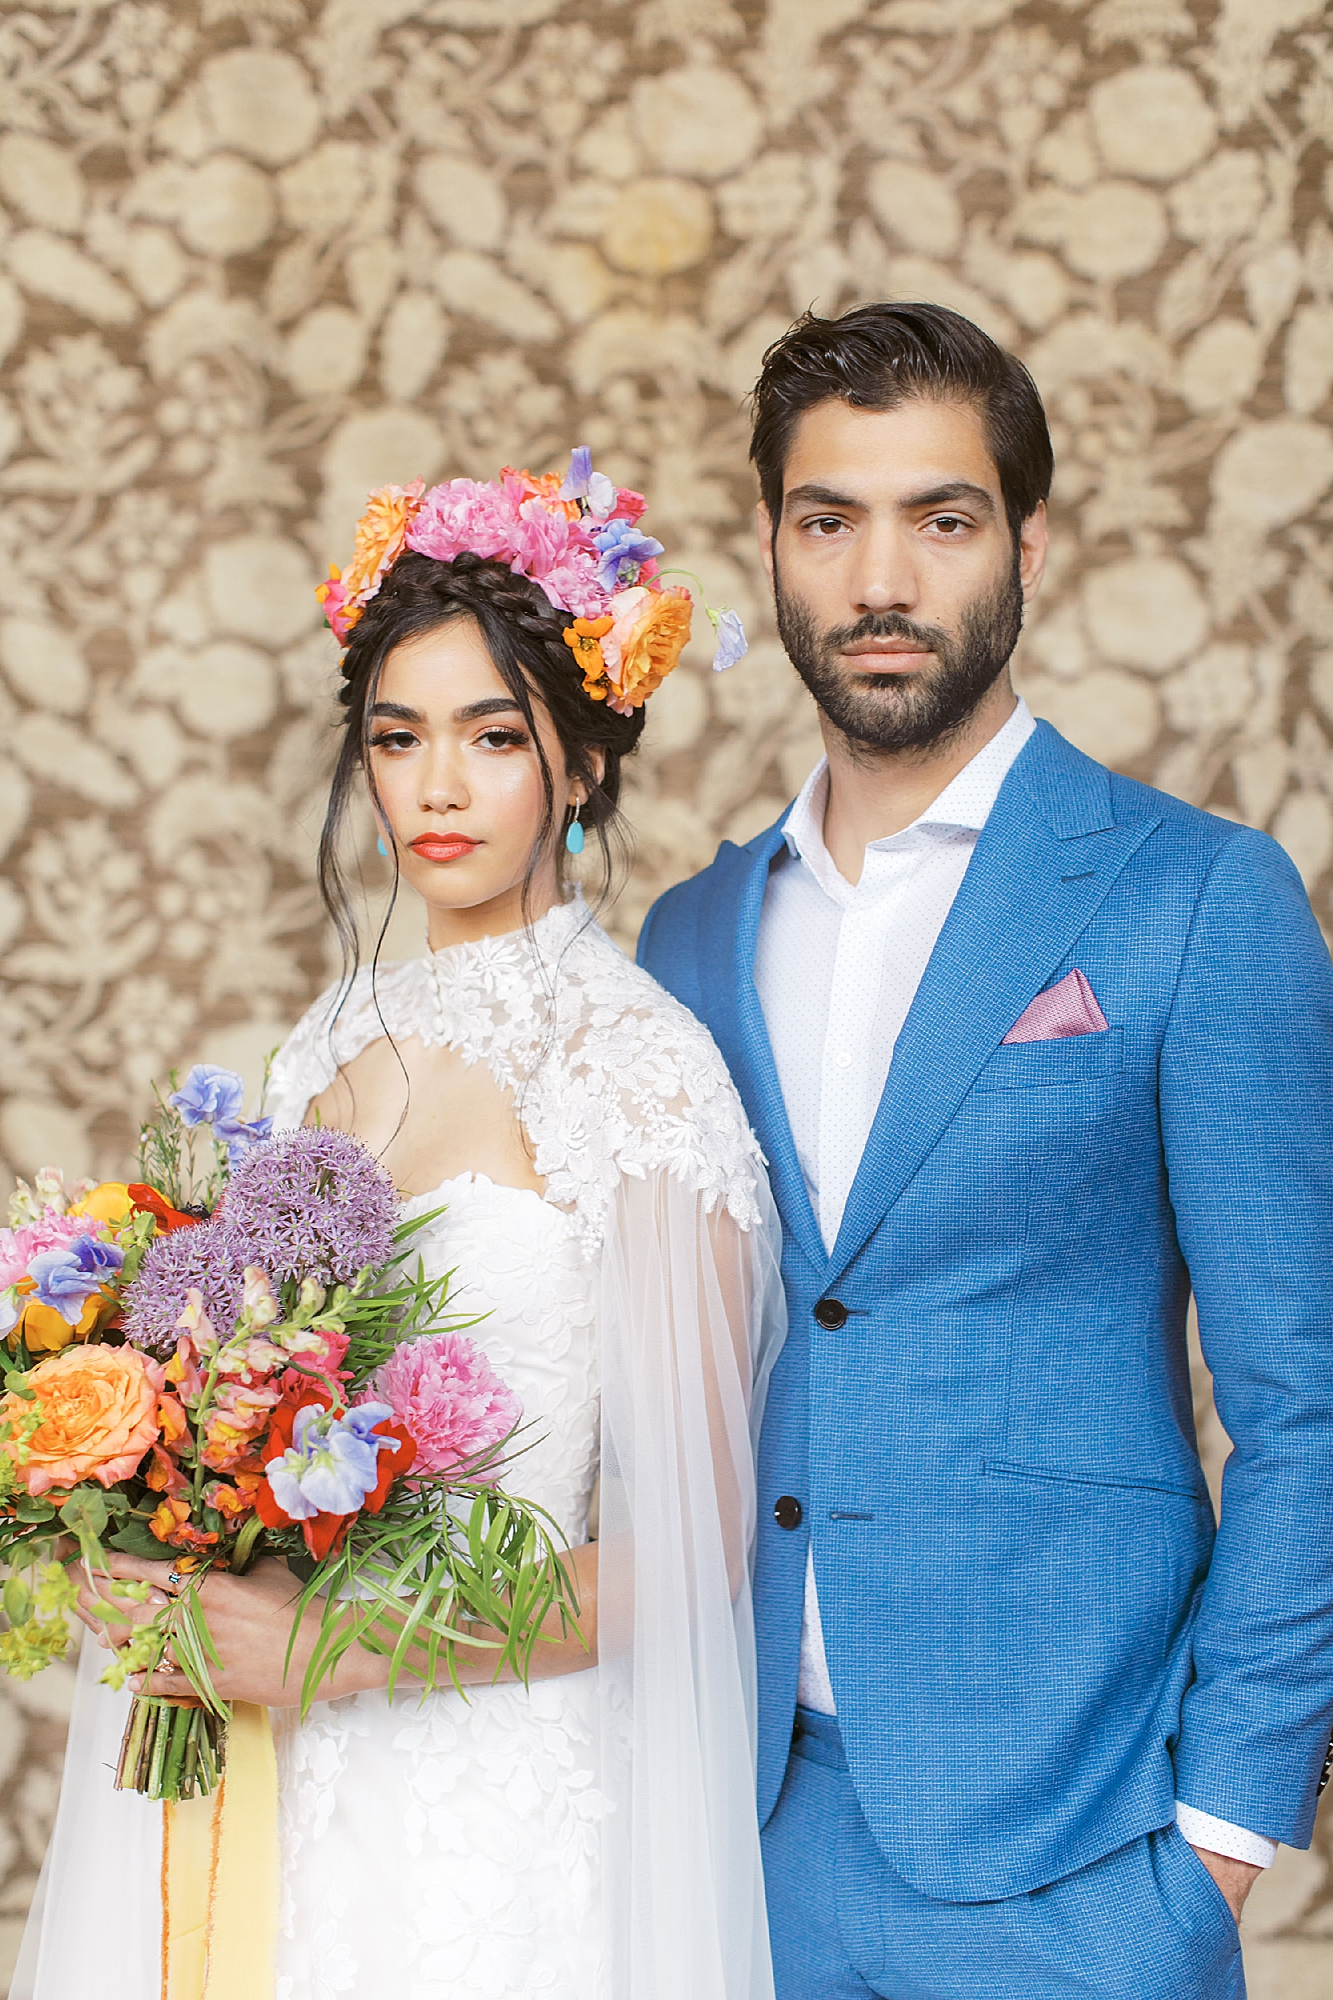 Vibrant and Colorful Frida Kahlo Inspired Wedding Photography by Magdalena Studios 0017